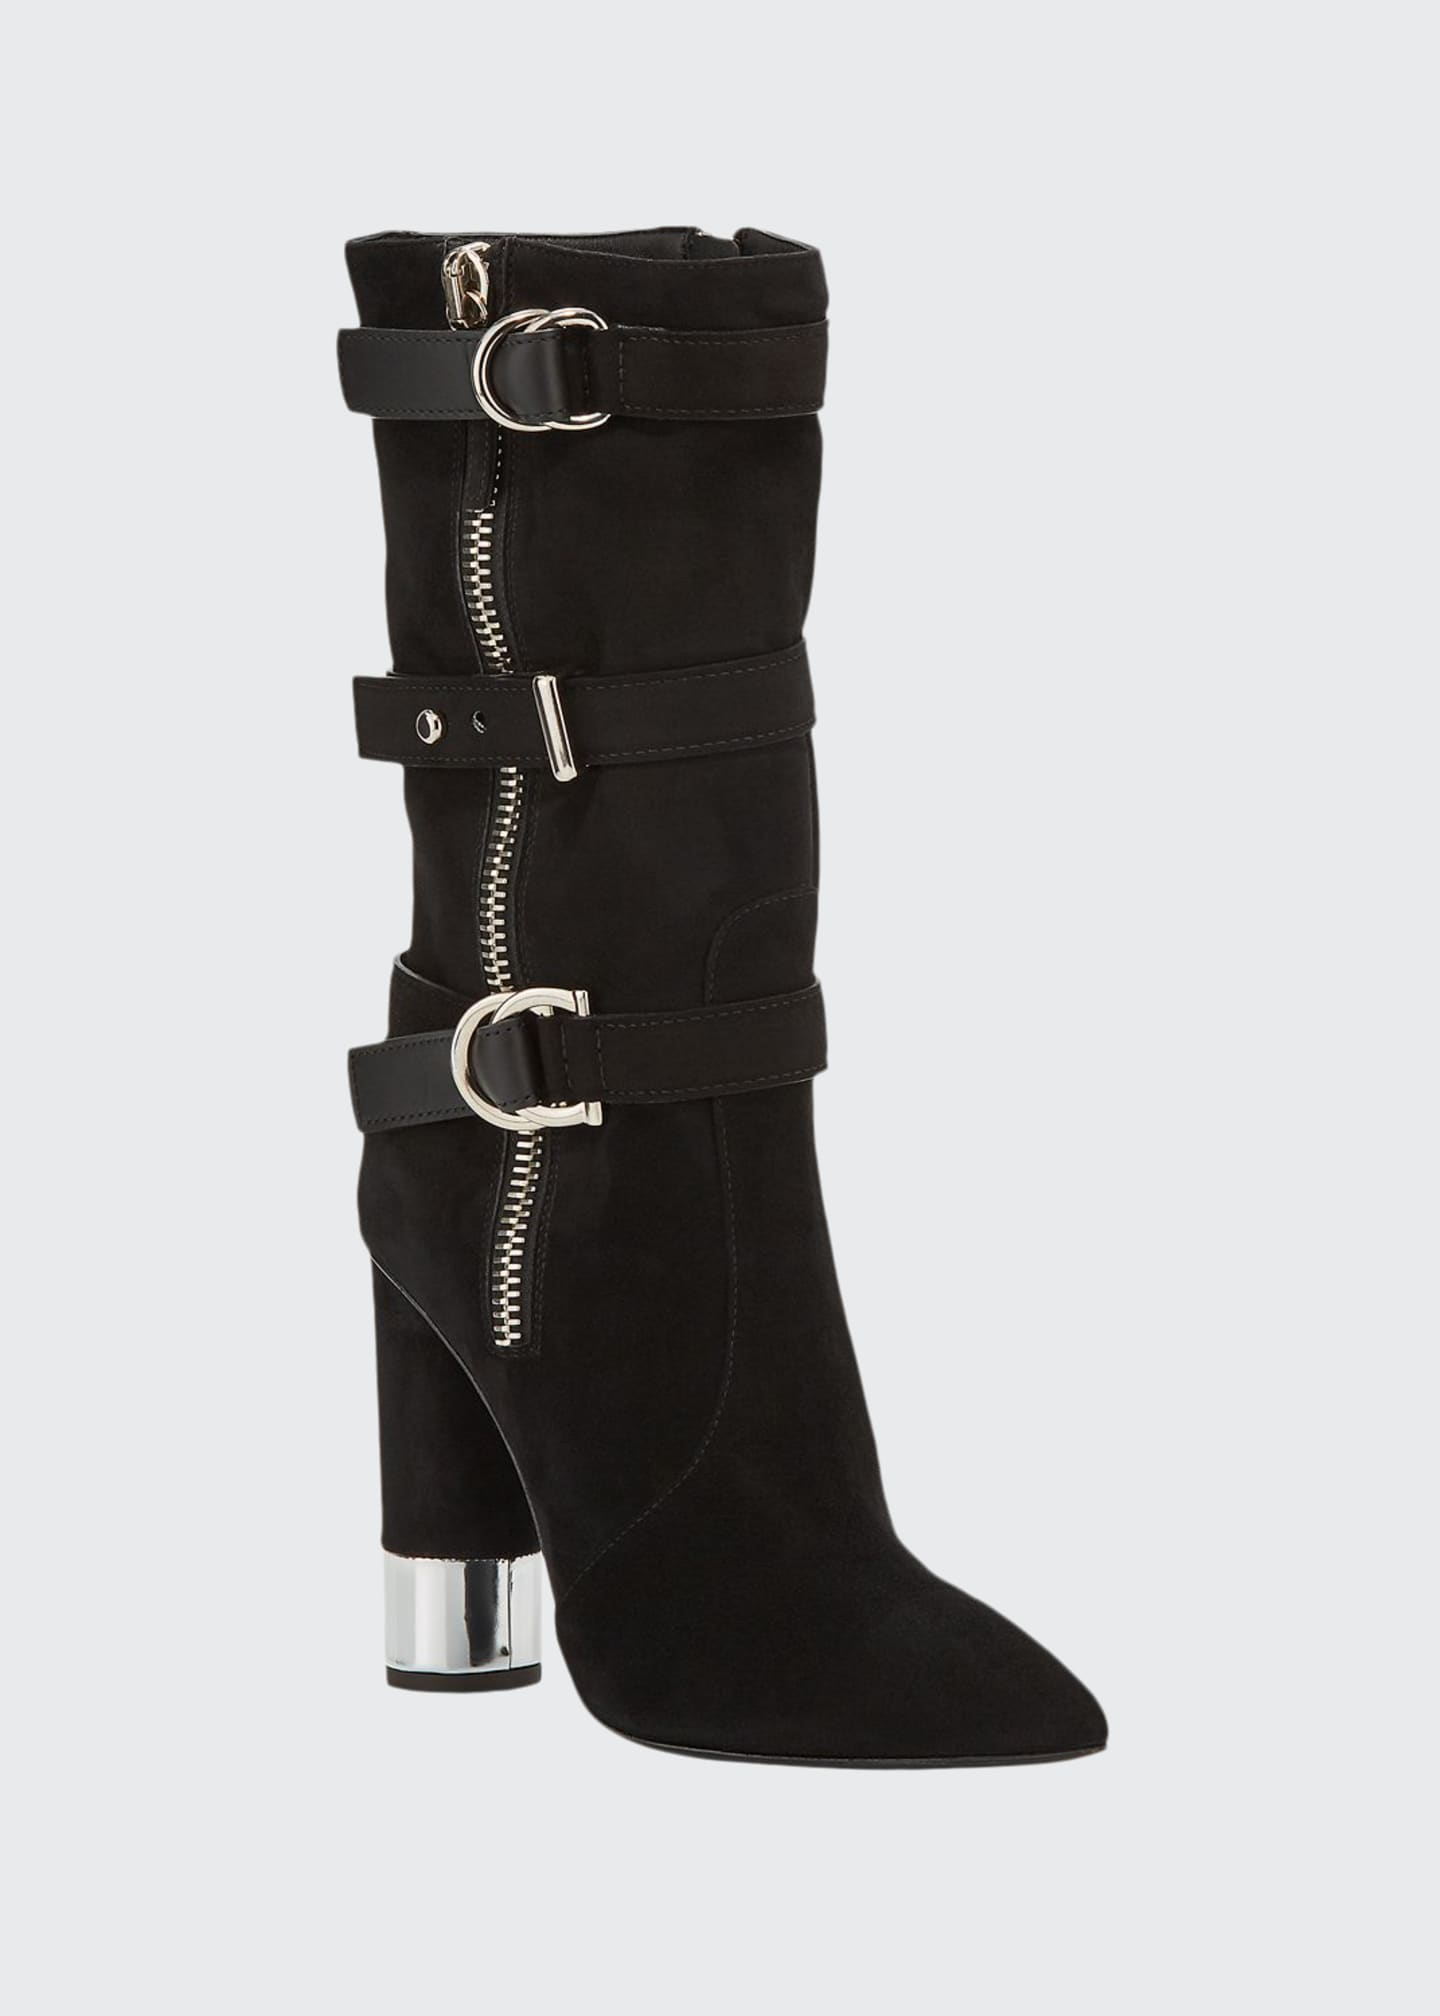 Giuseppe Zanotti Tall Suede Buckle Boots